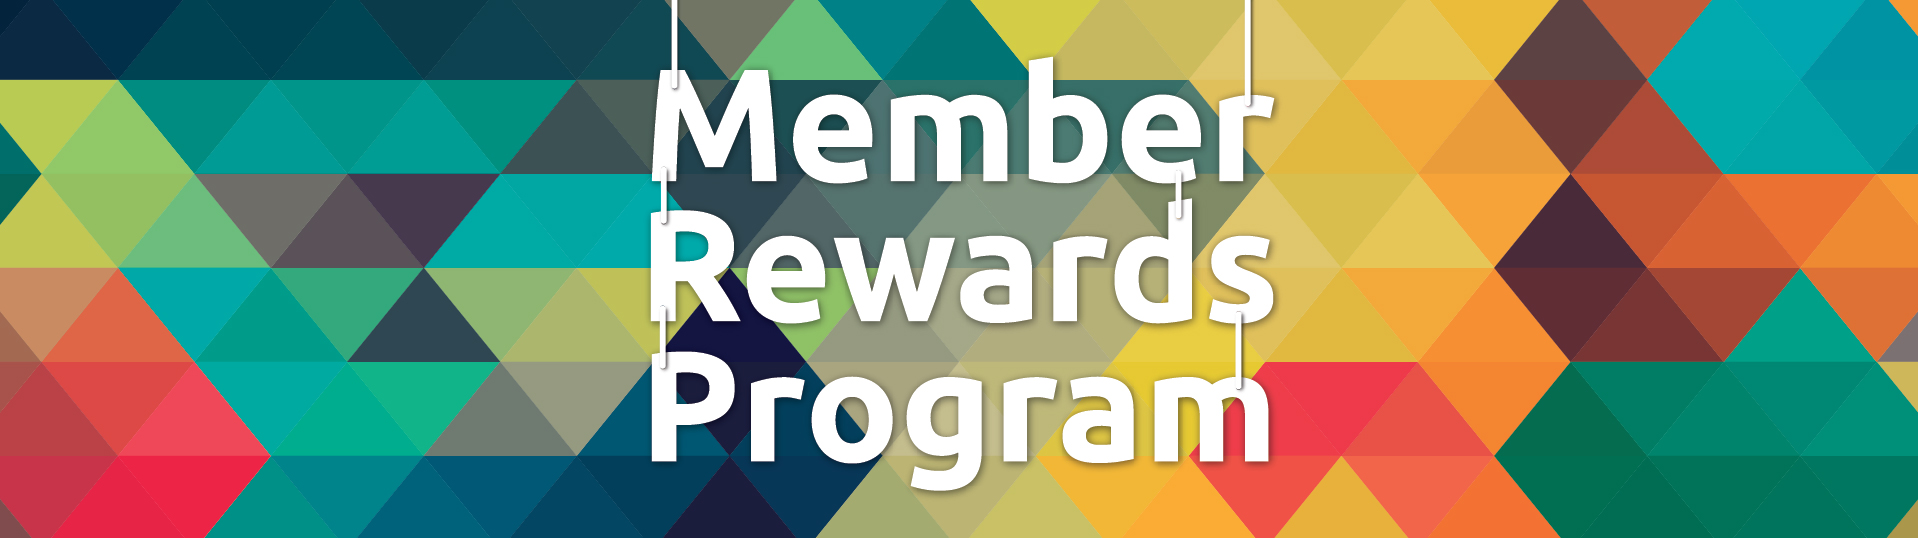 Member Rewards Program